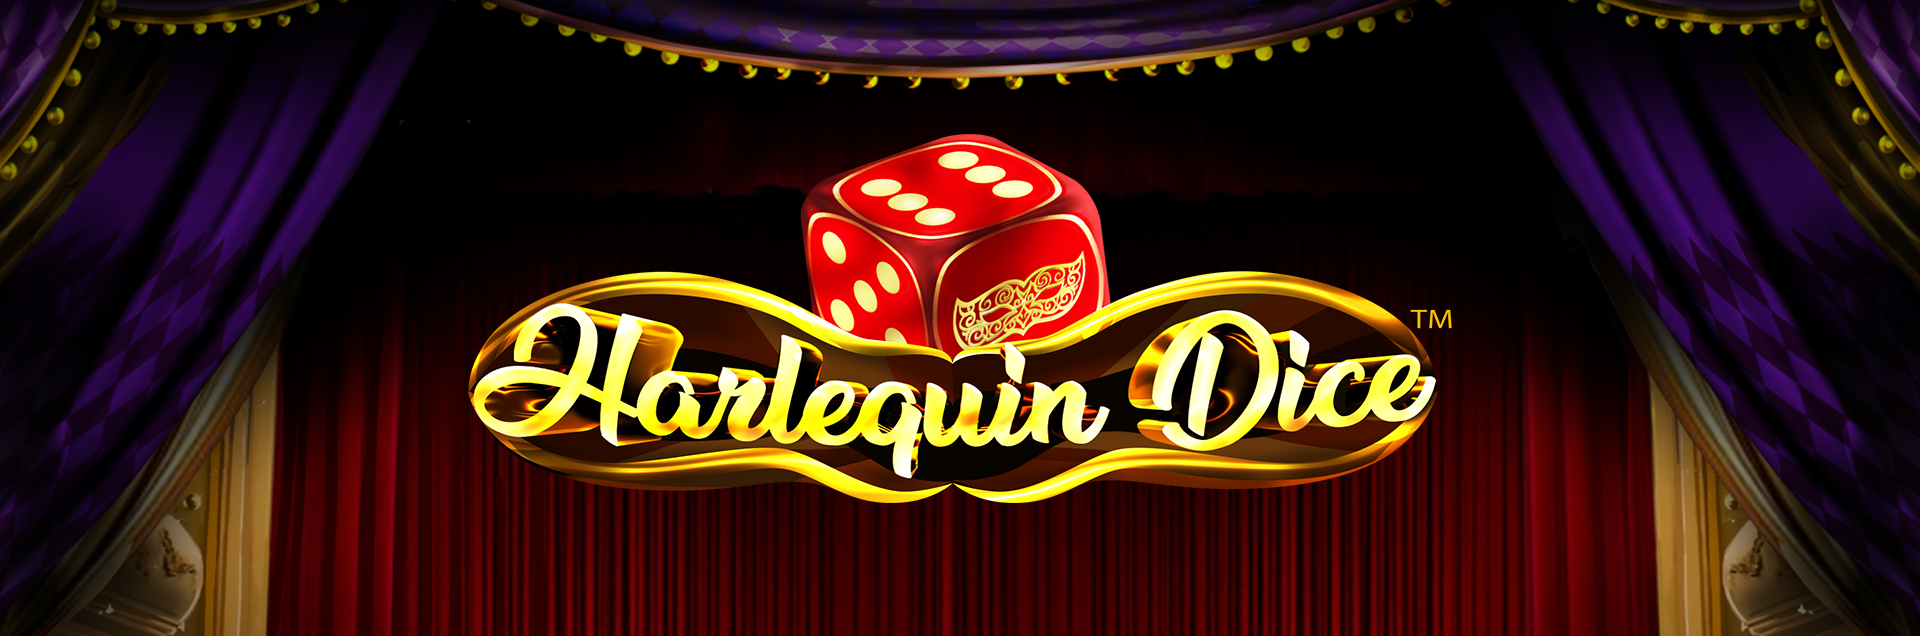 Harlequin Dice games banner